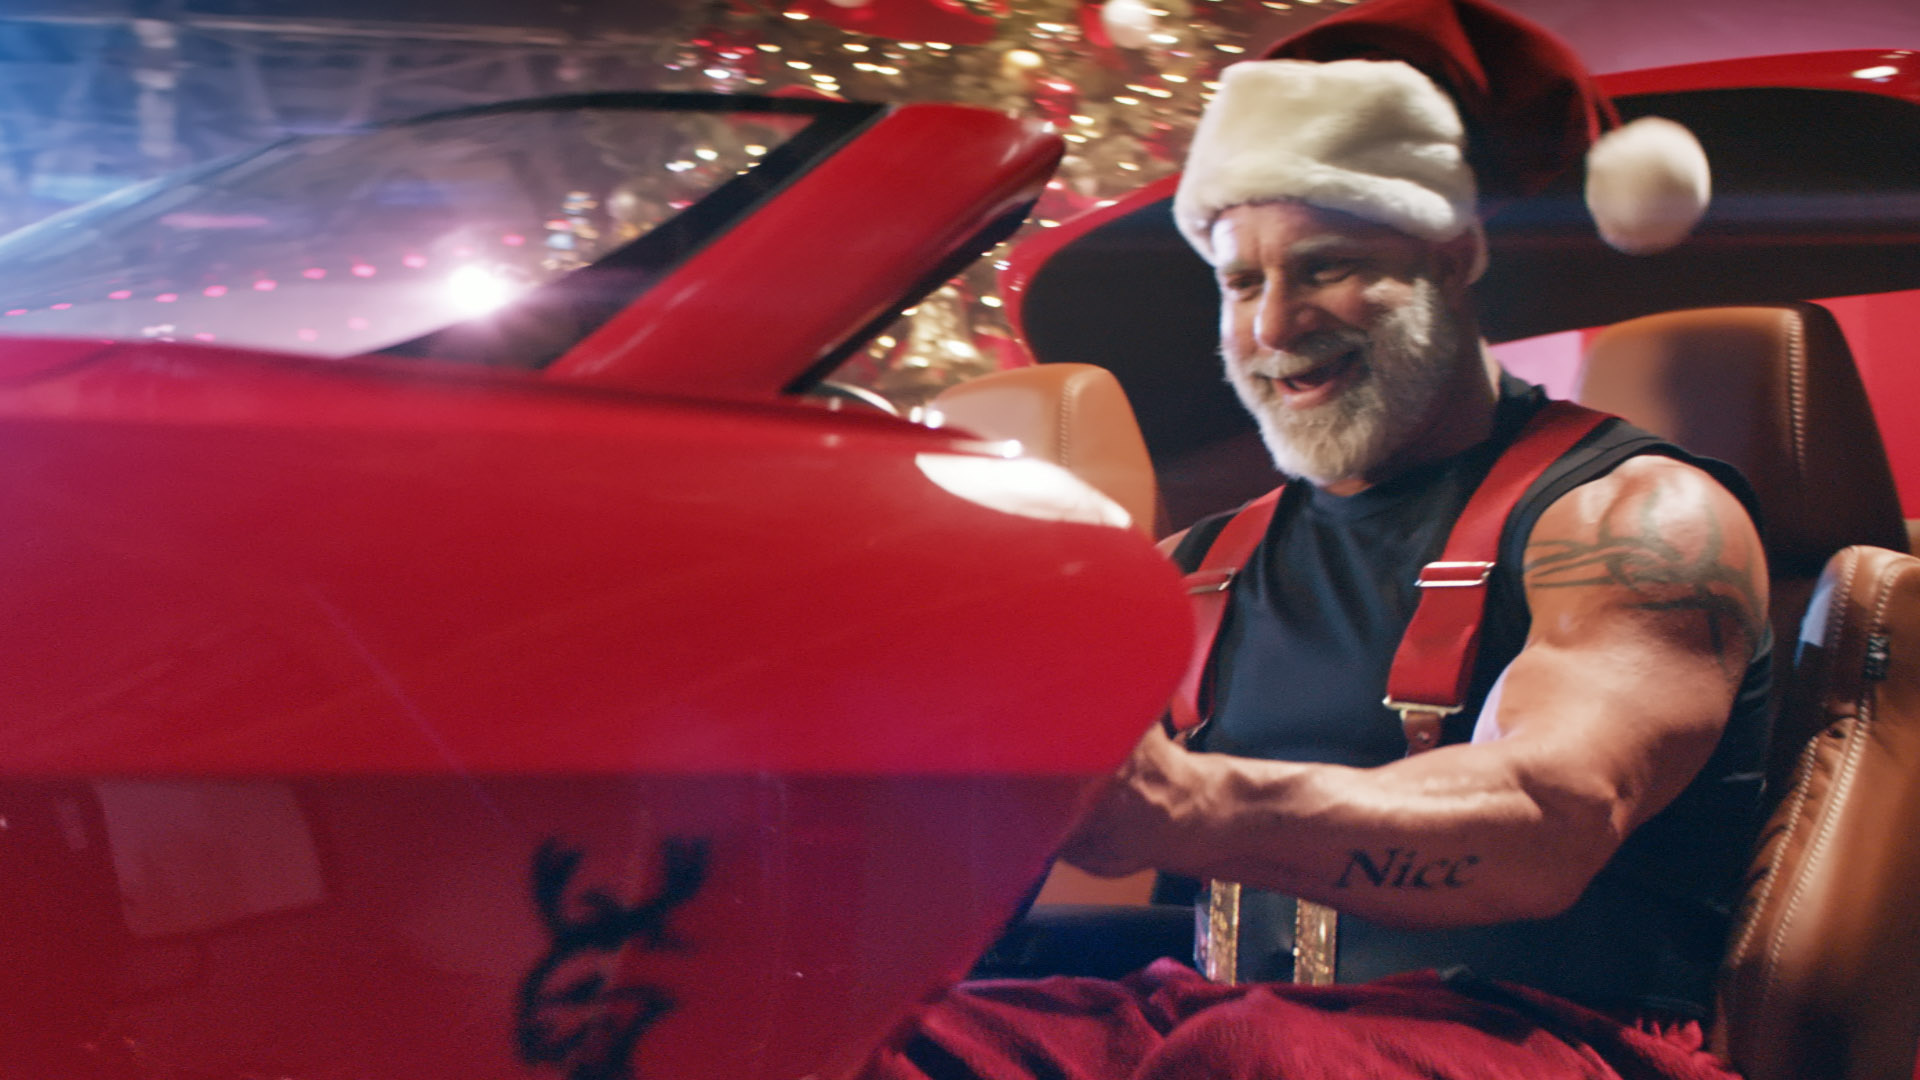 Who Is In The 2020 Christmas Dodge Commercial Dodge Releases Seven New Holiday Commercials Heading Into